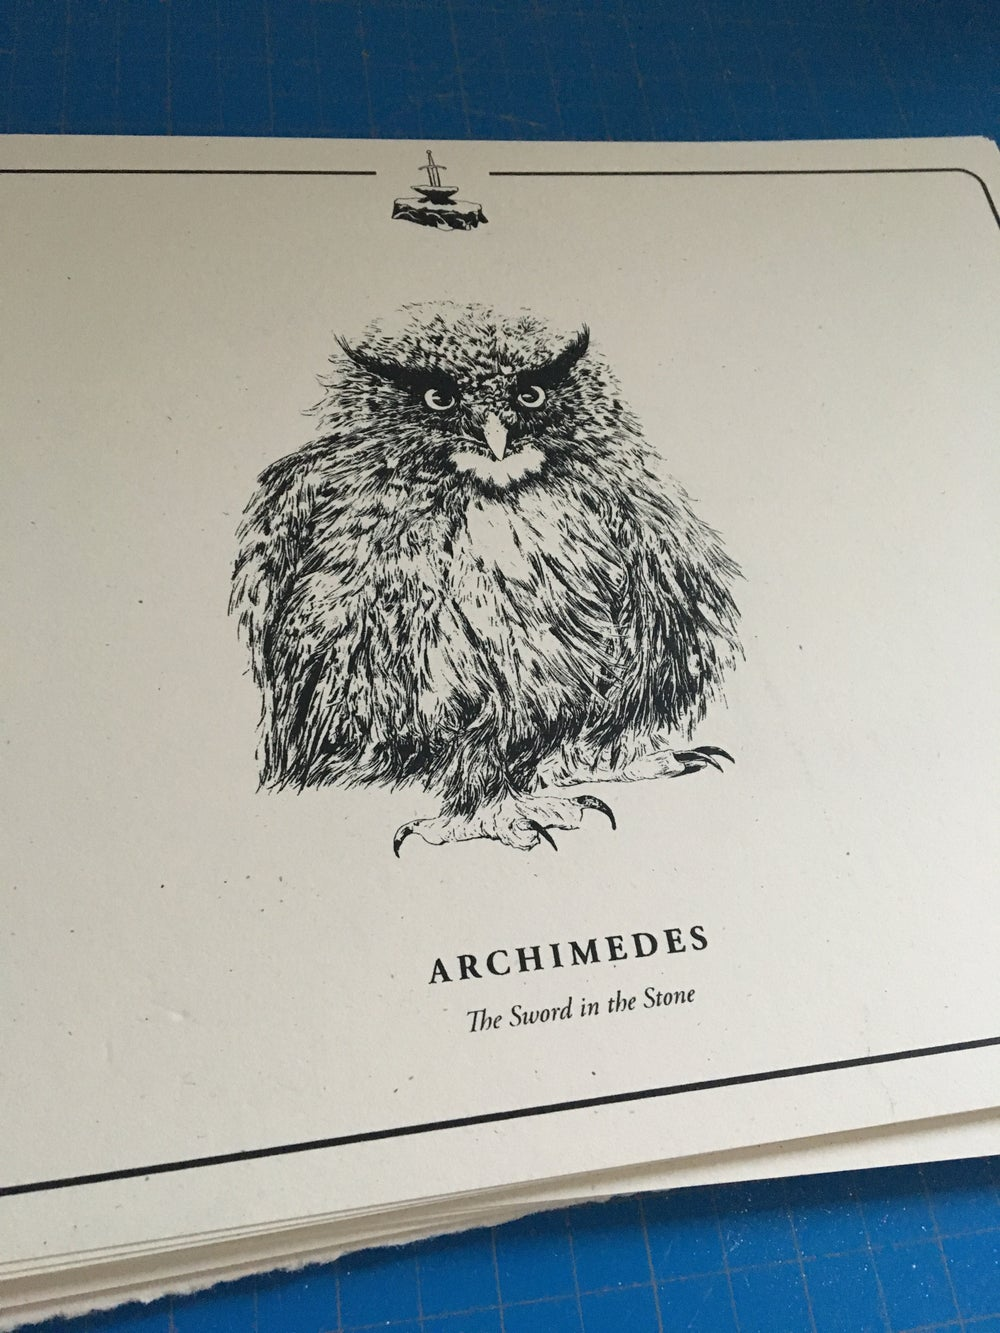 Image of Archimedes